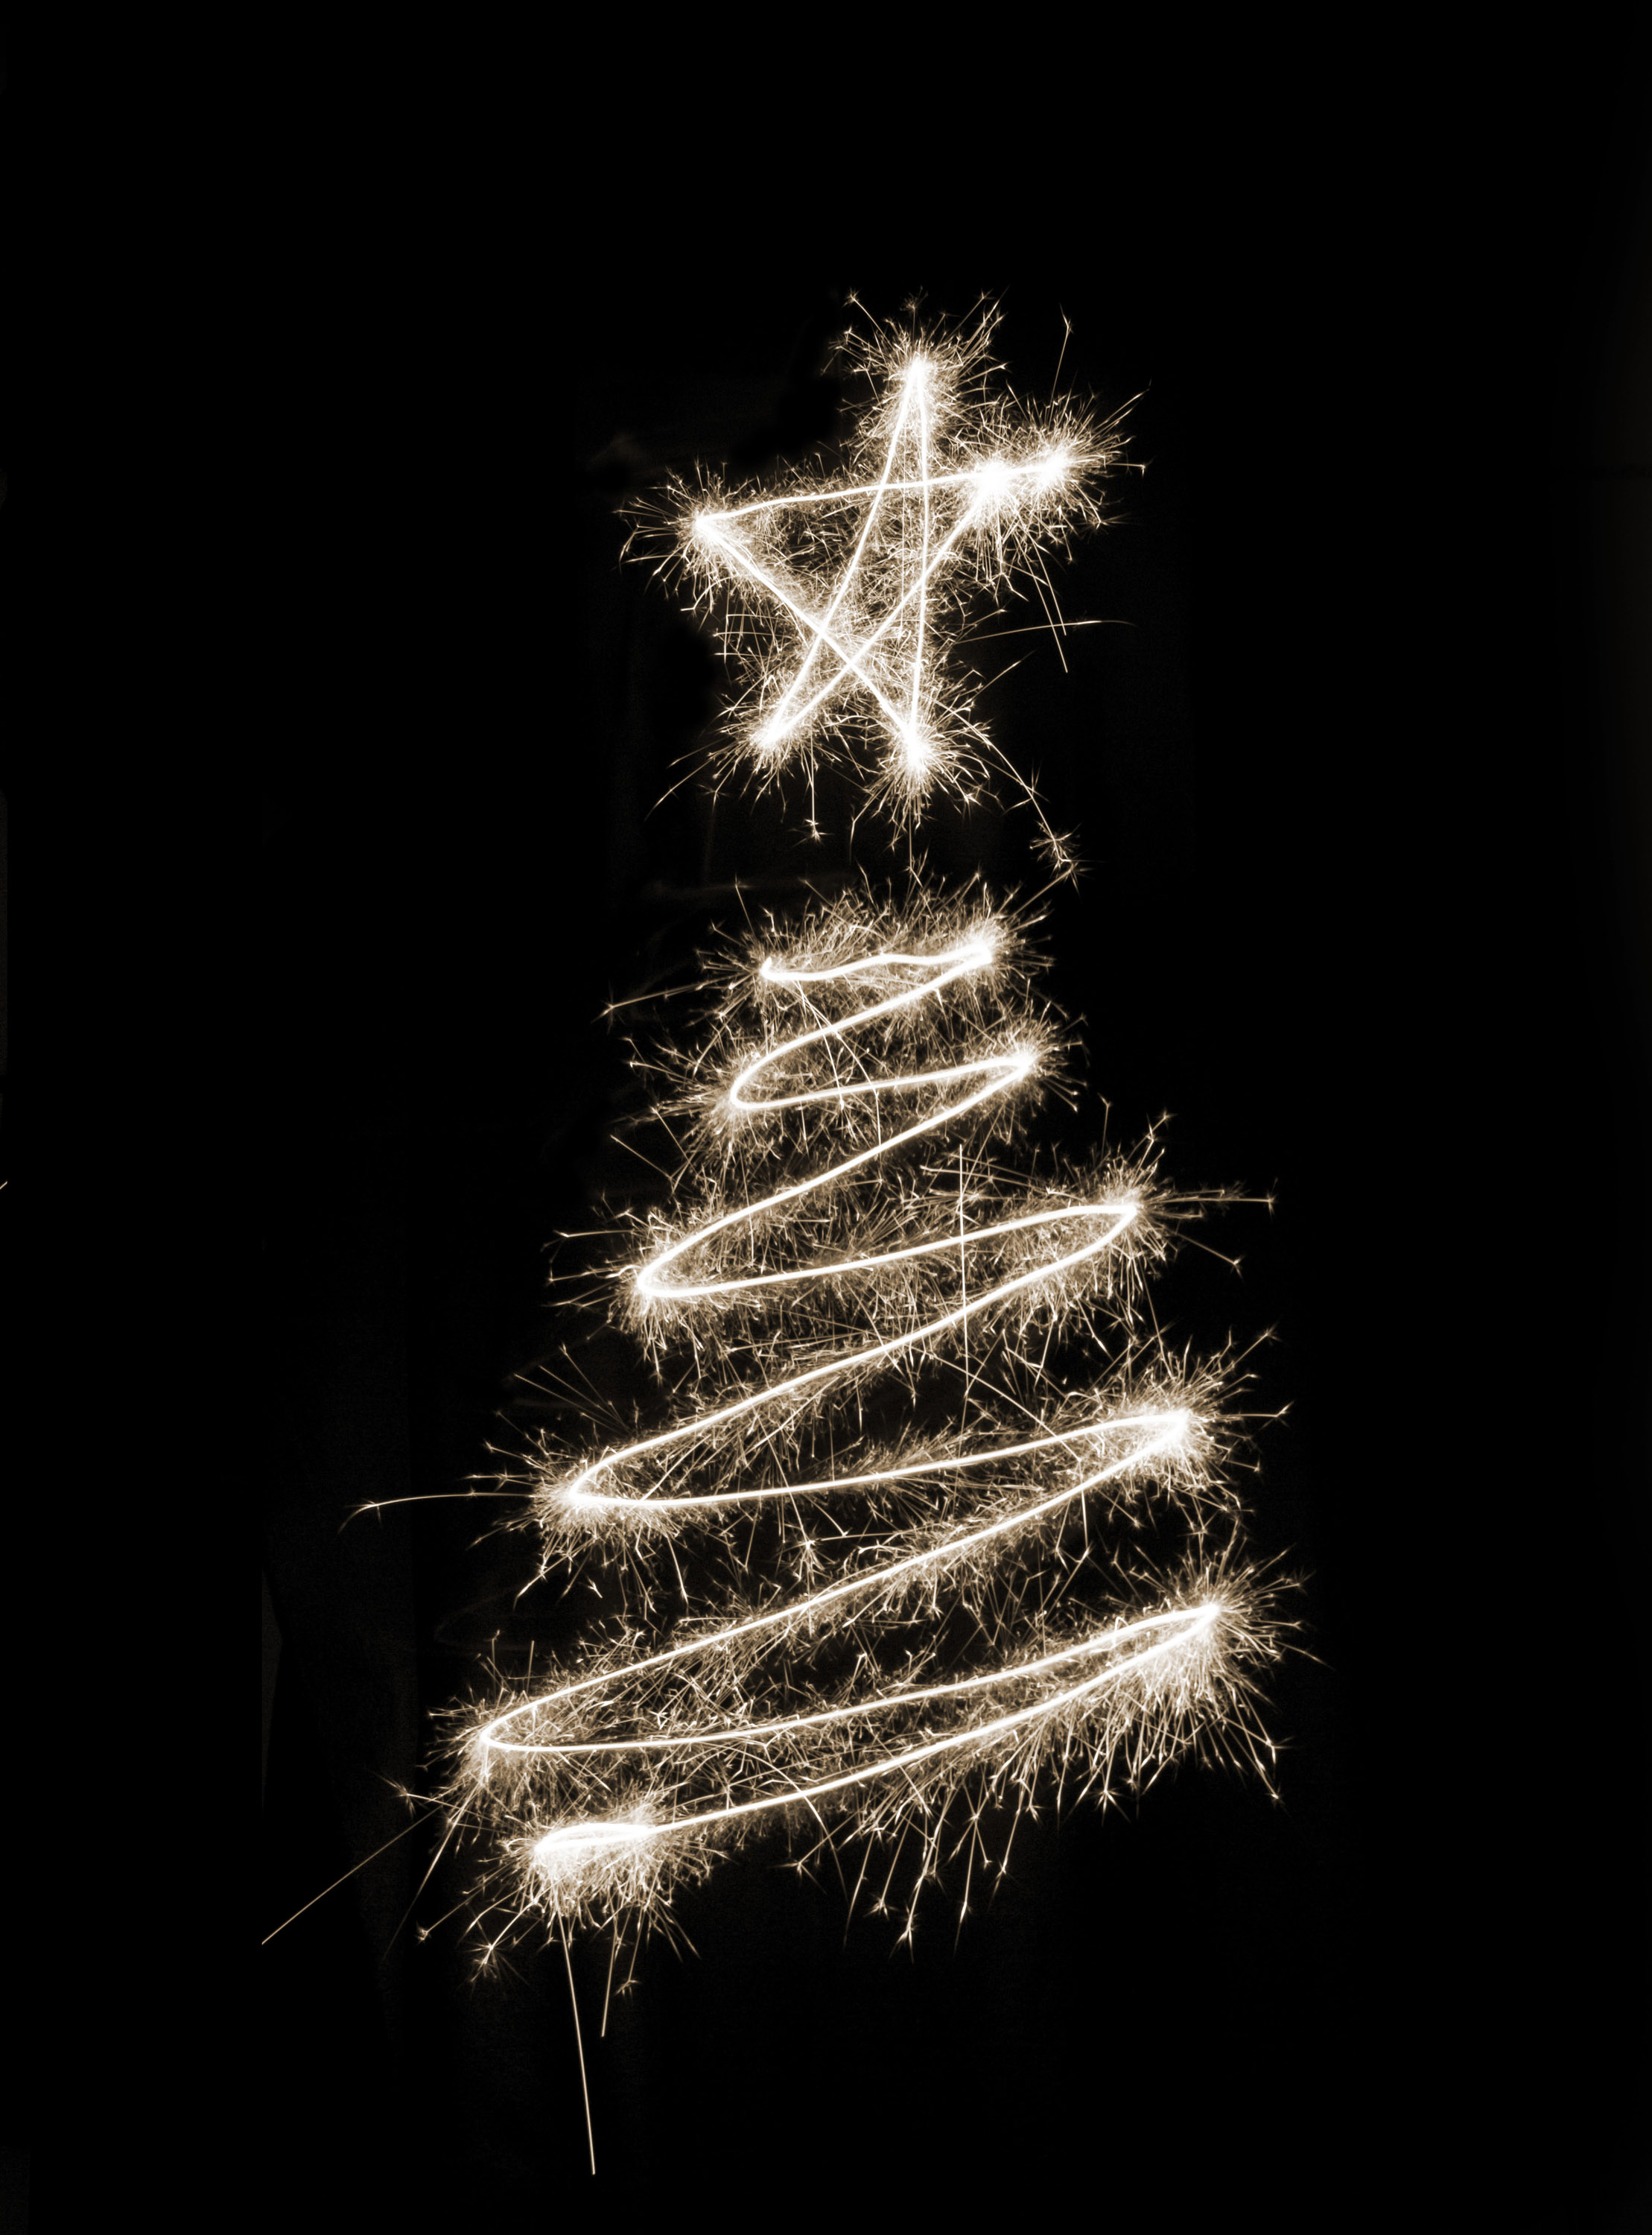 A white christmas tree symbol drawn in sparkler trails